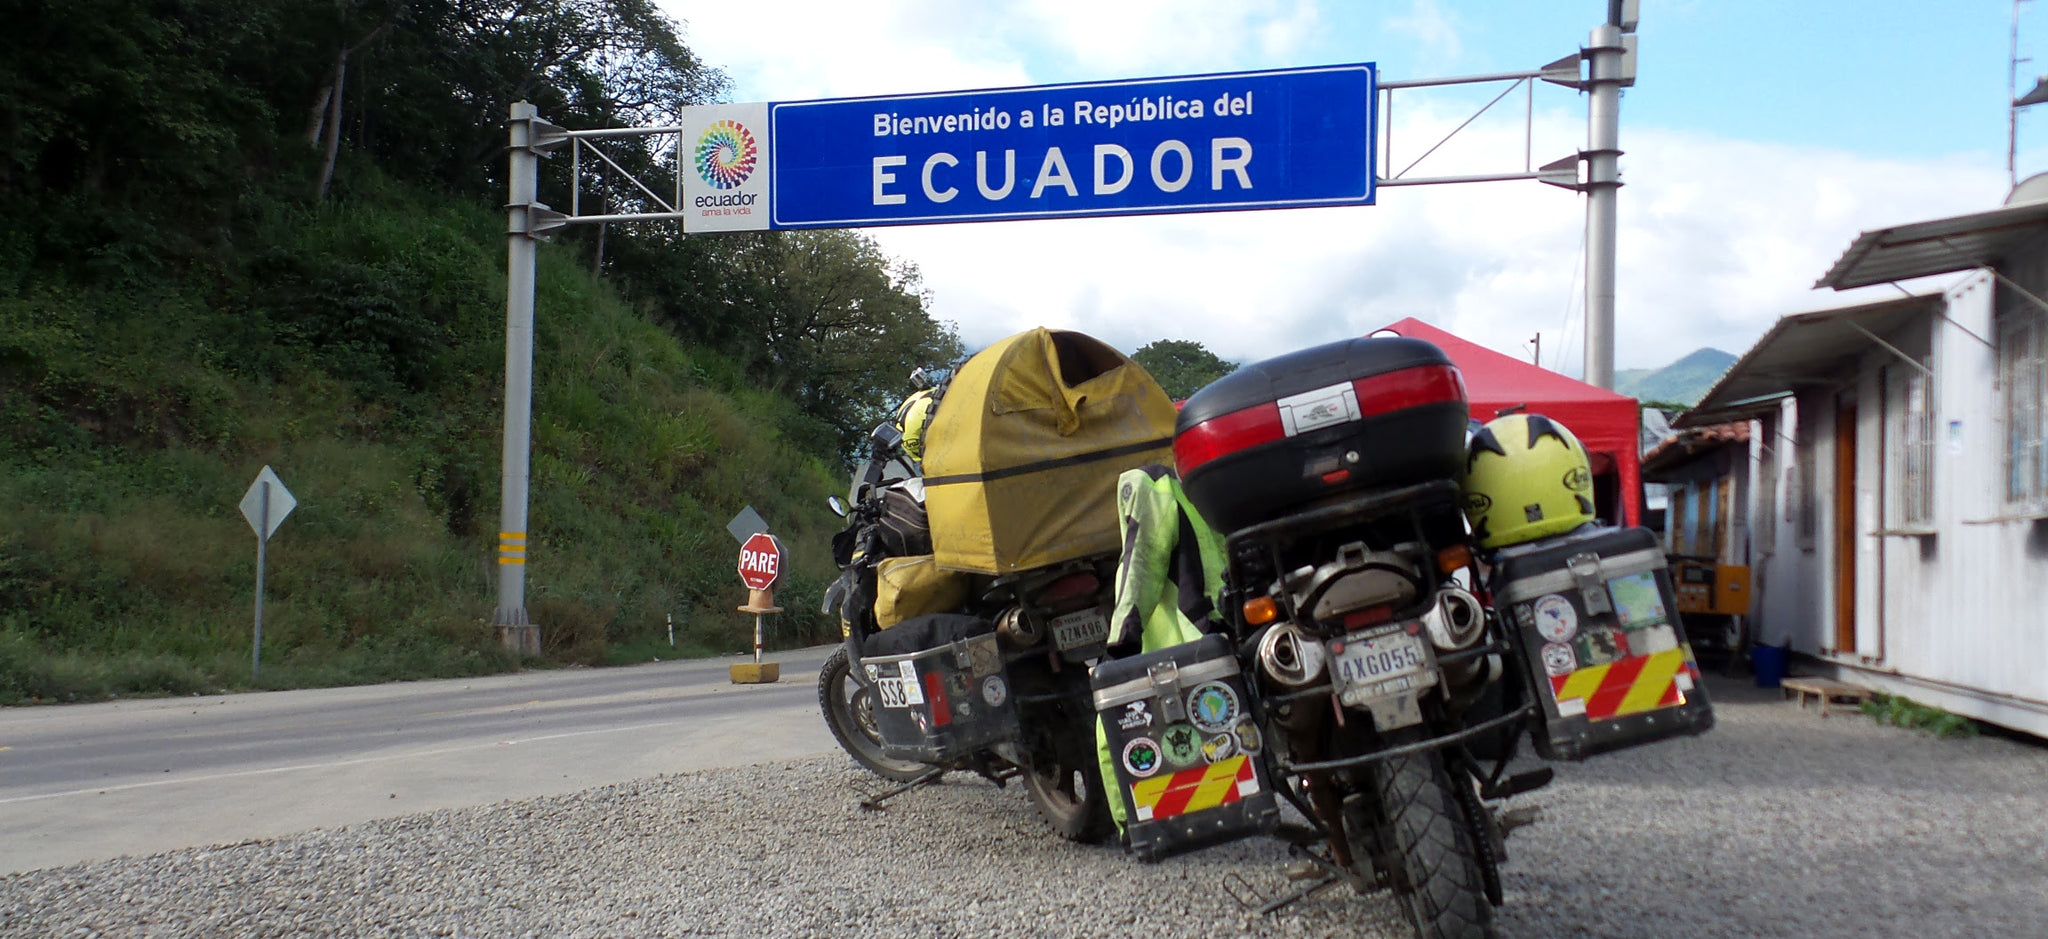 Entering Ecuador